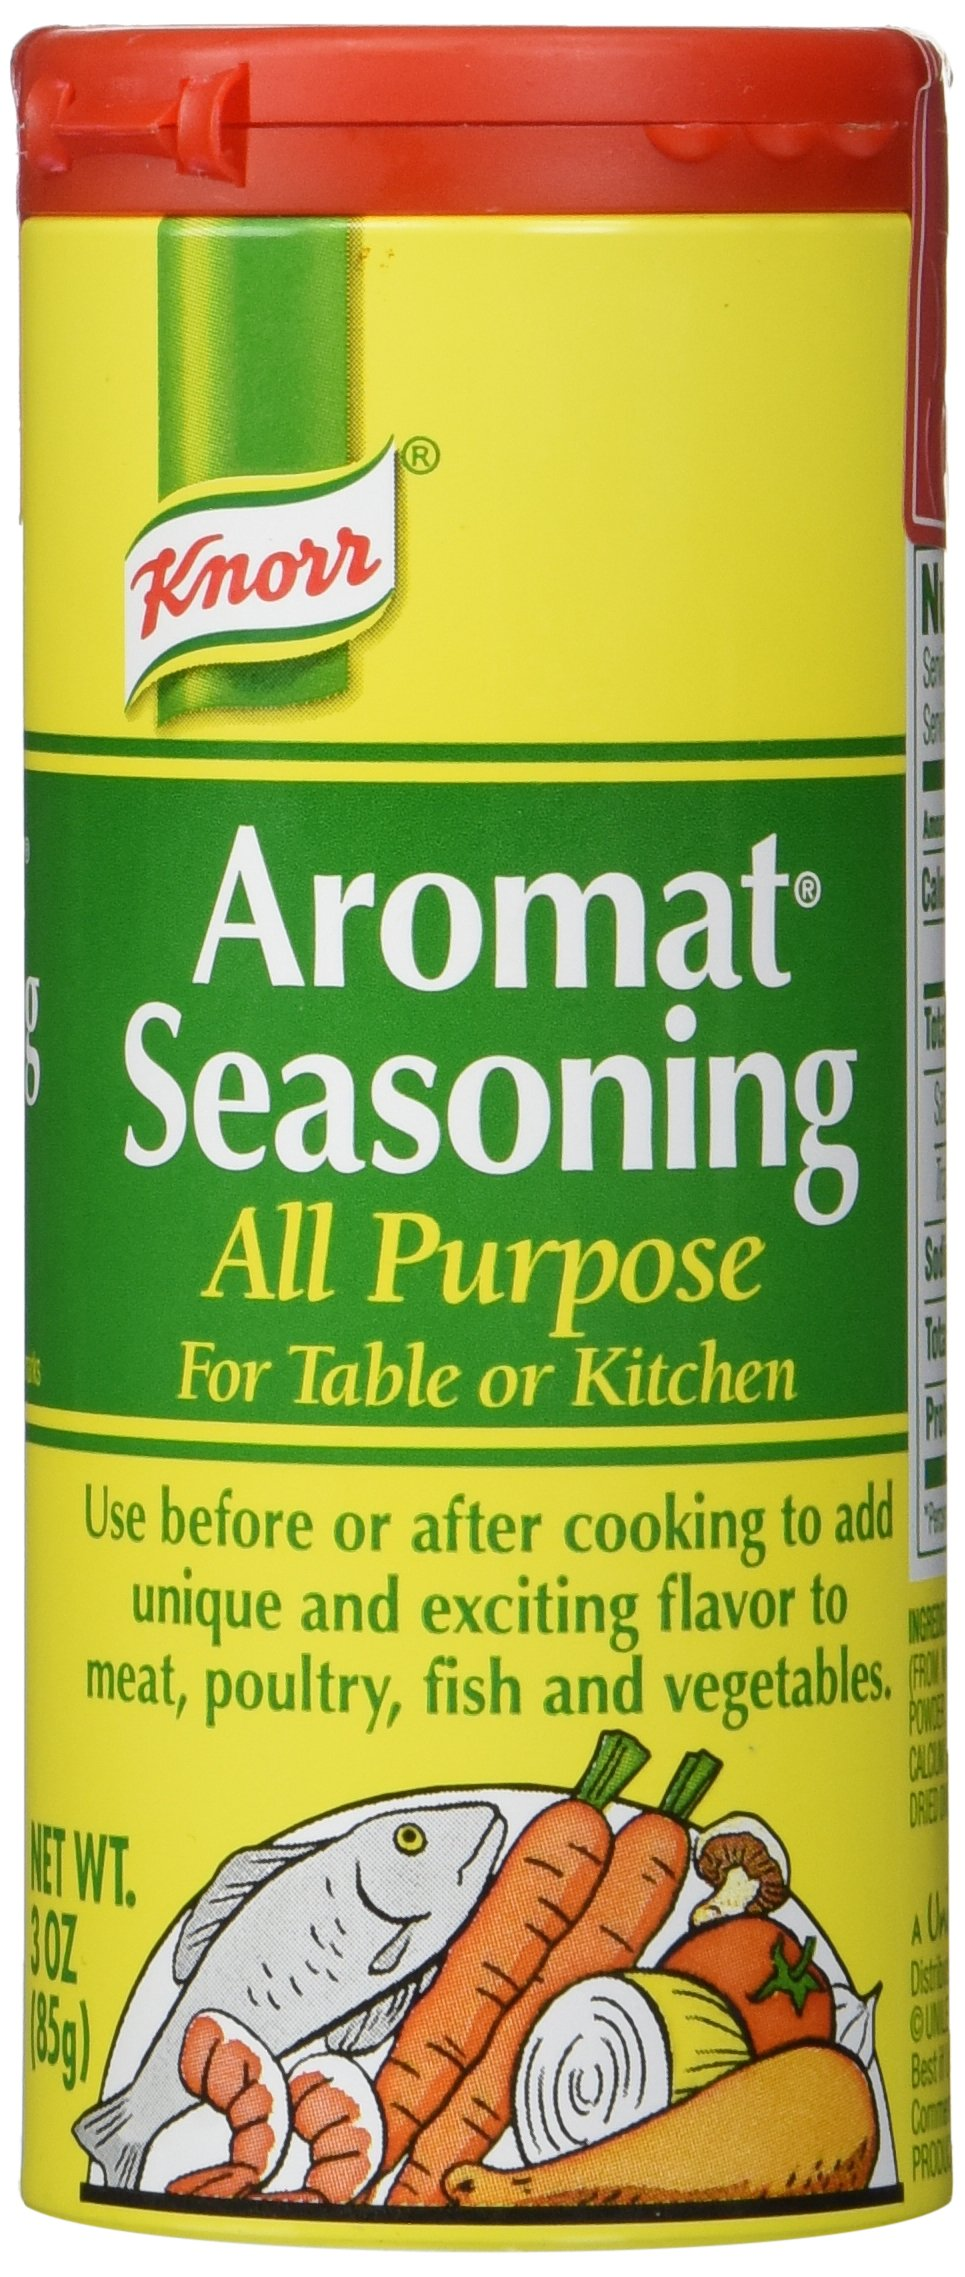 Knorr All Purpose Aromat Seasoning 3oz./85g